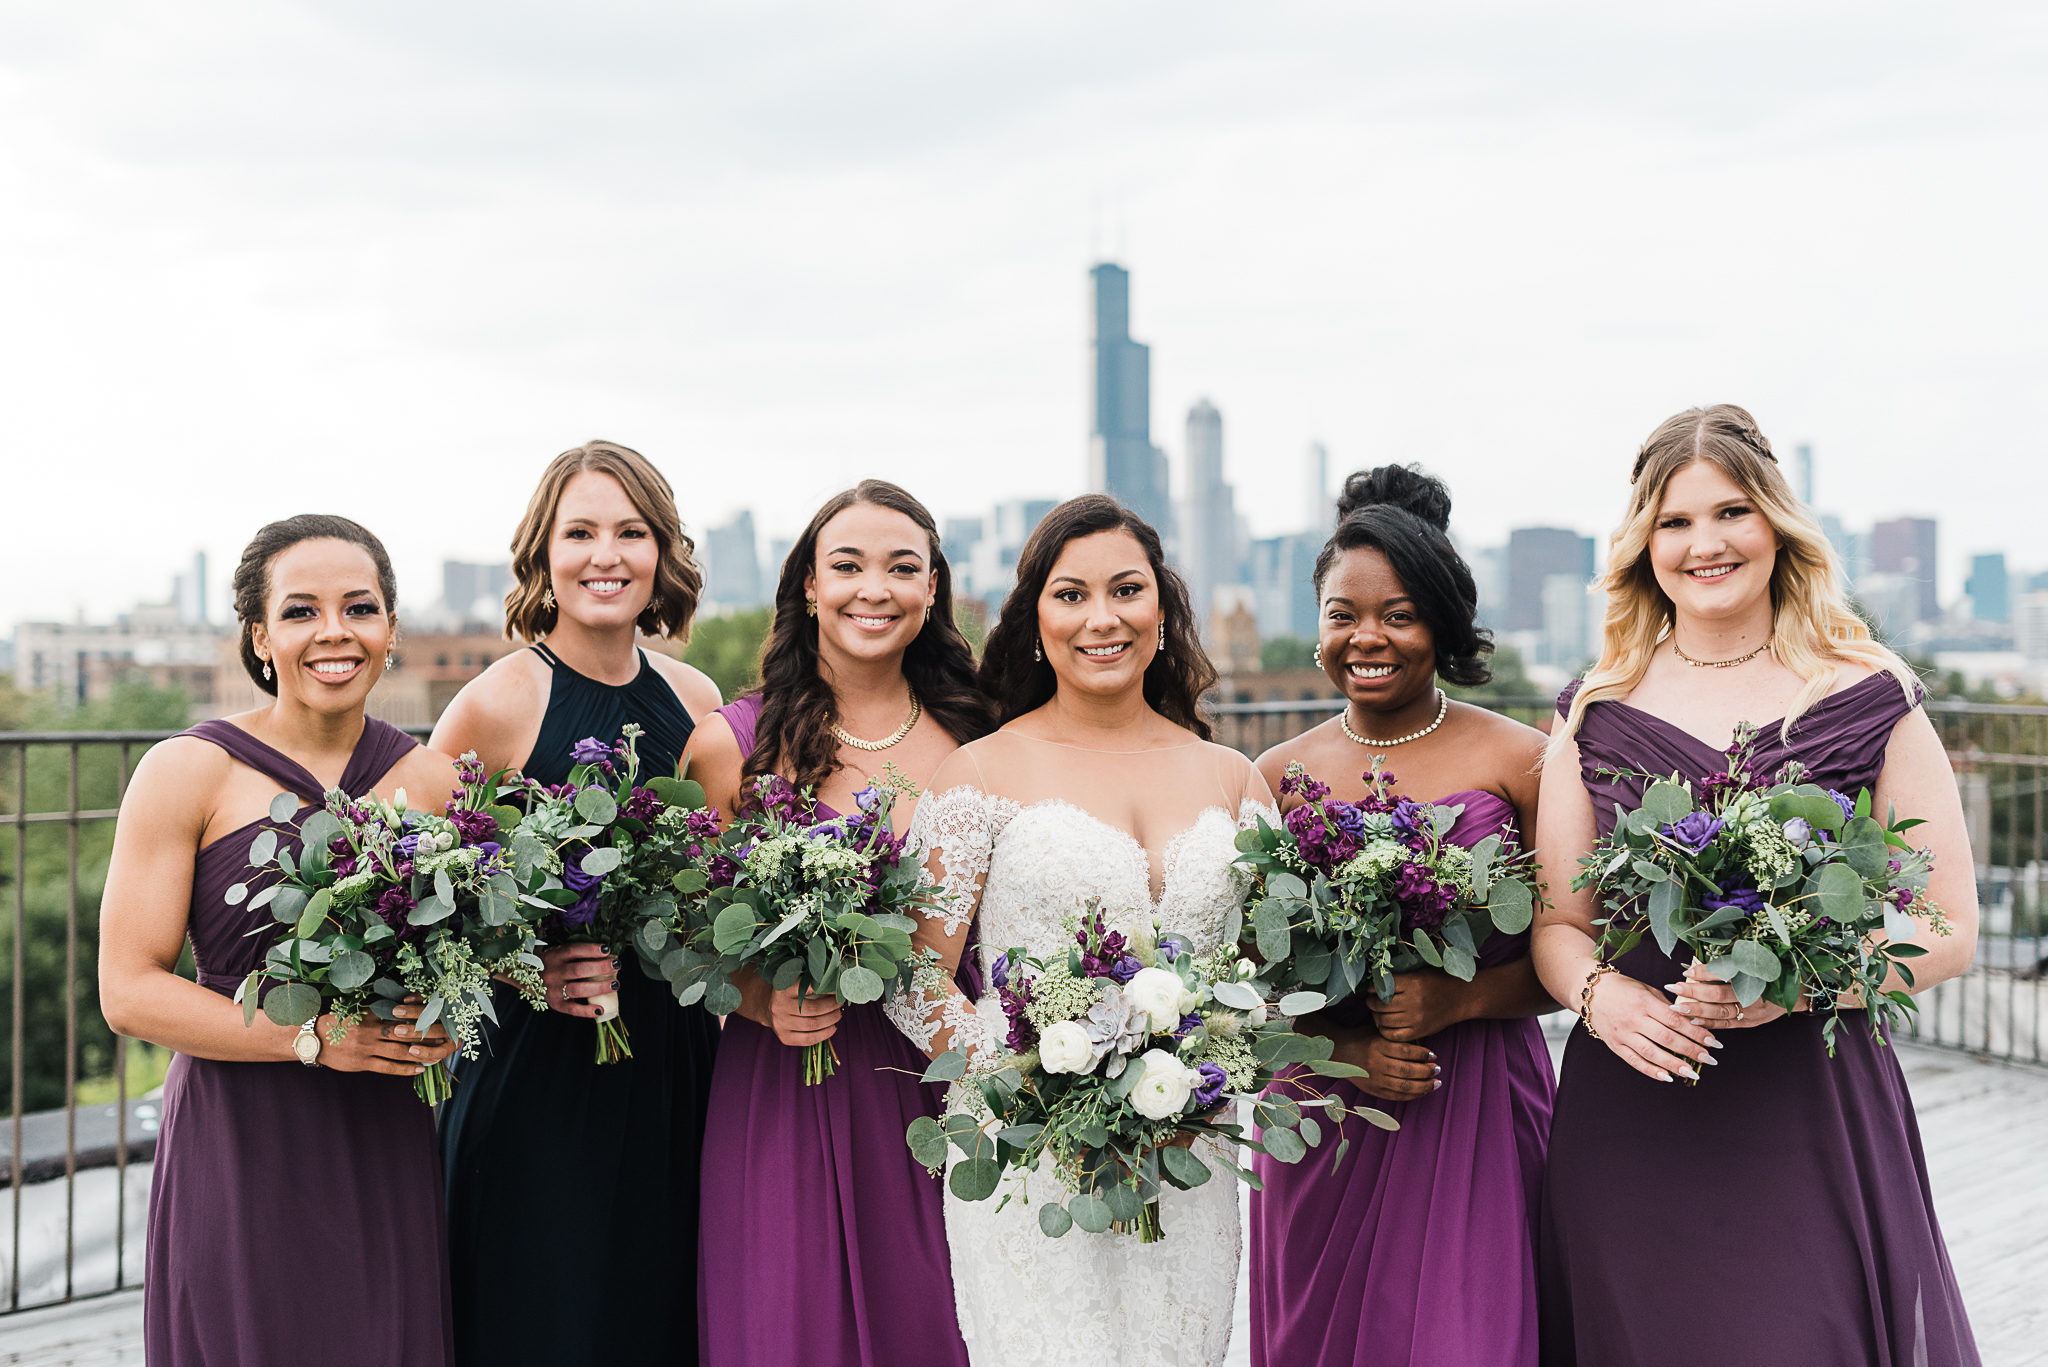 chicagoweddingphotographer_lacunalofts-1049.jpg